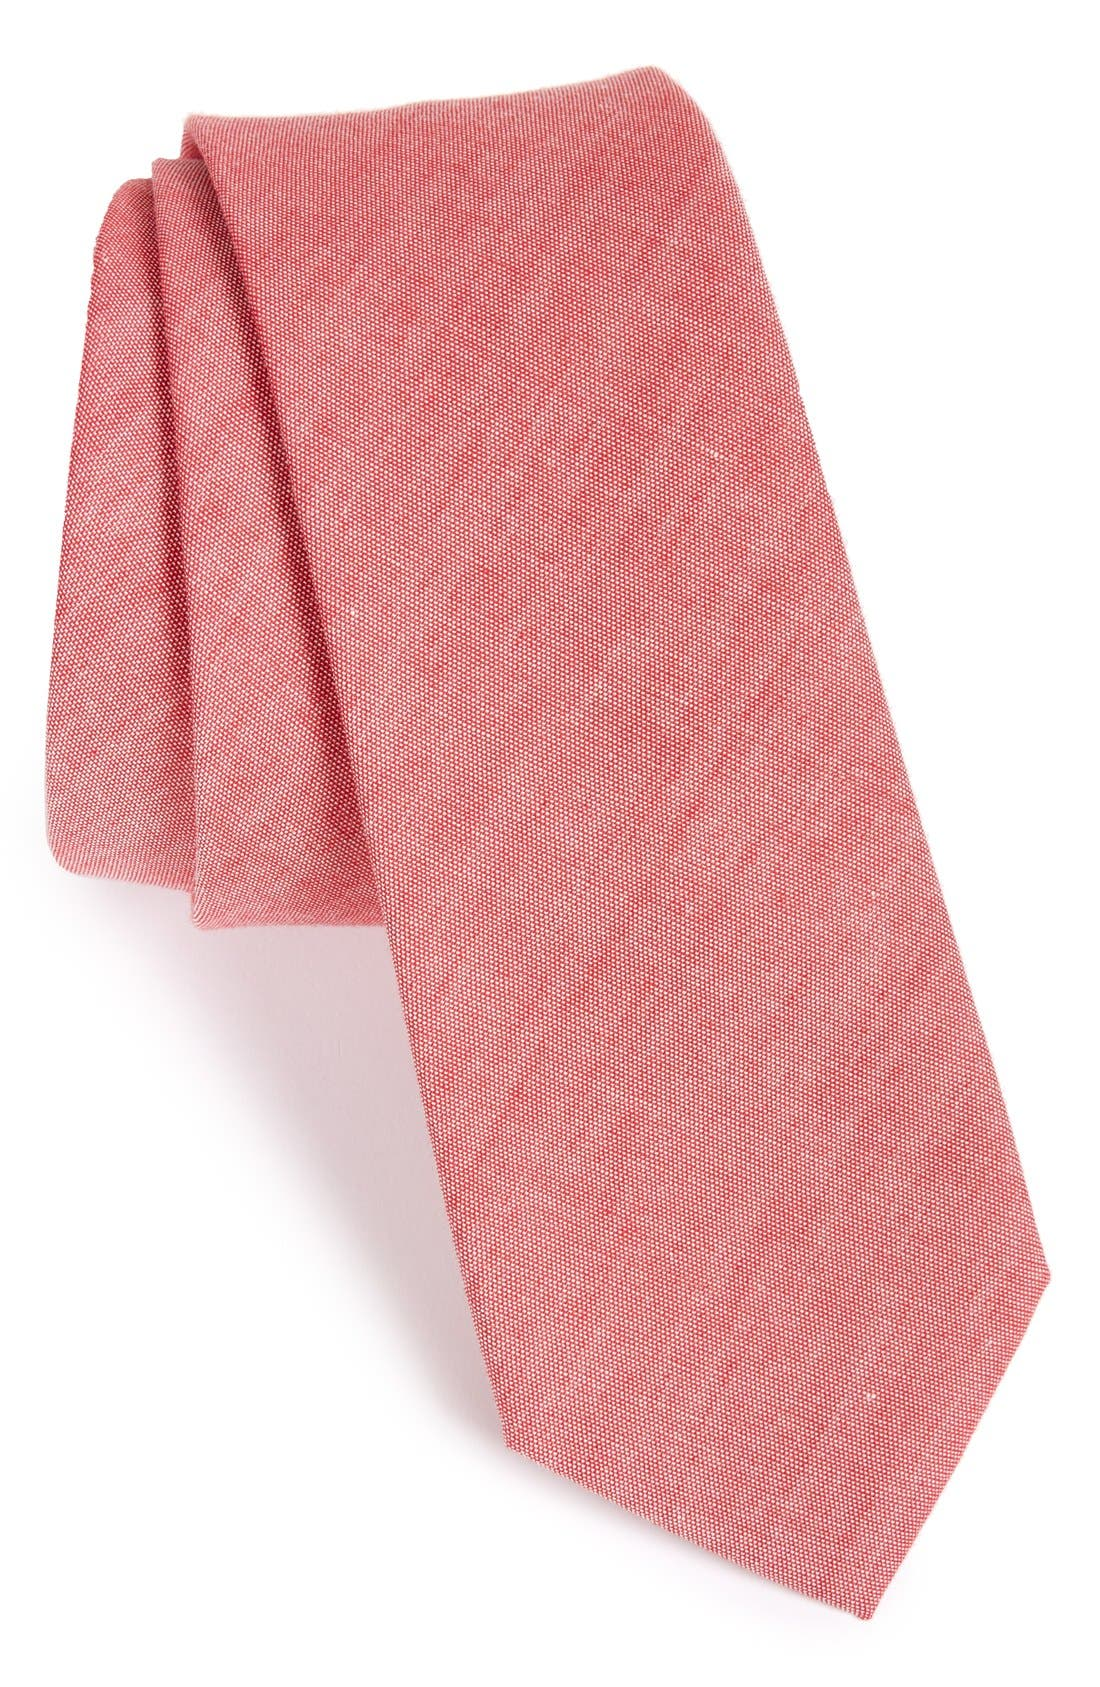 Alternate Image 1 Selected - The Tie Bar Cotton Tie